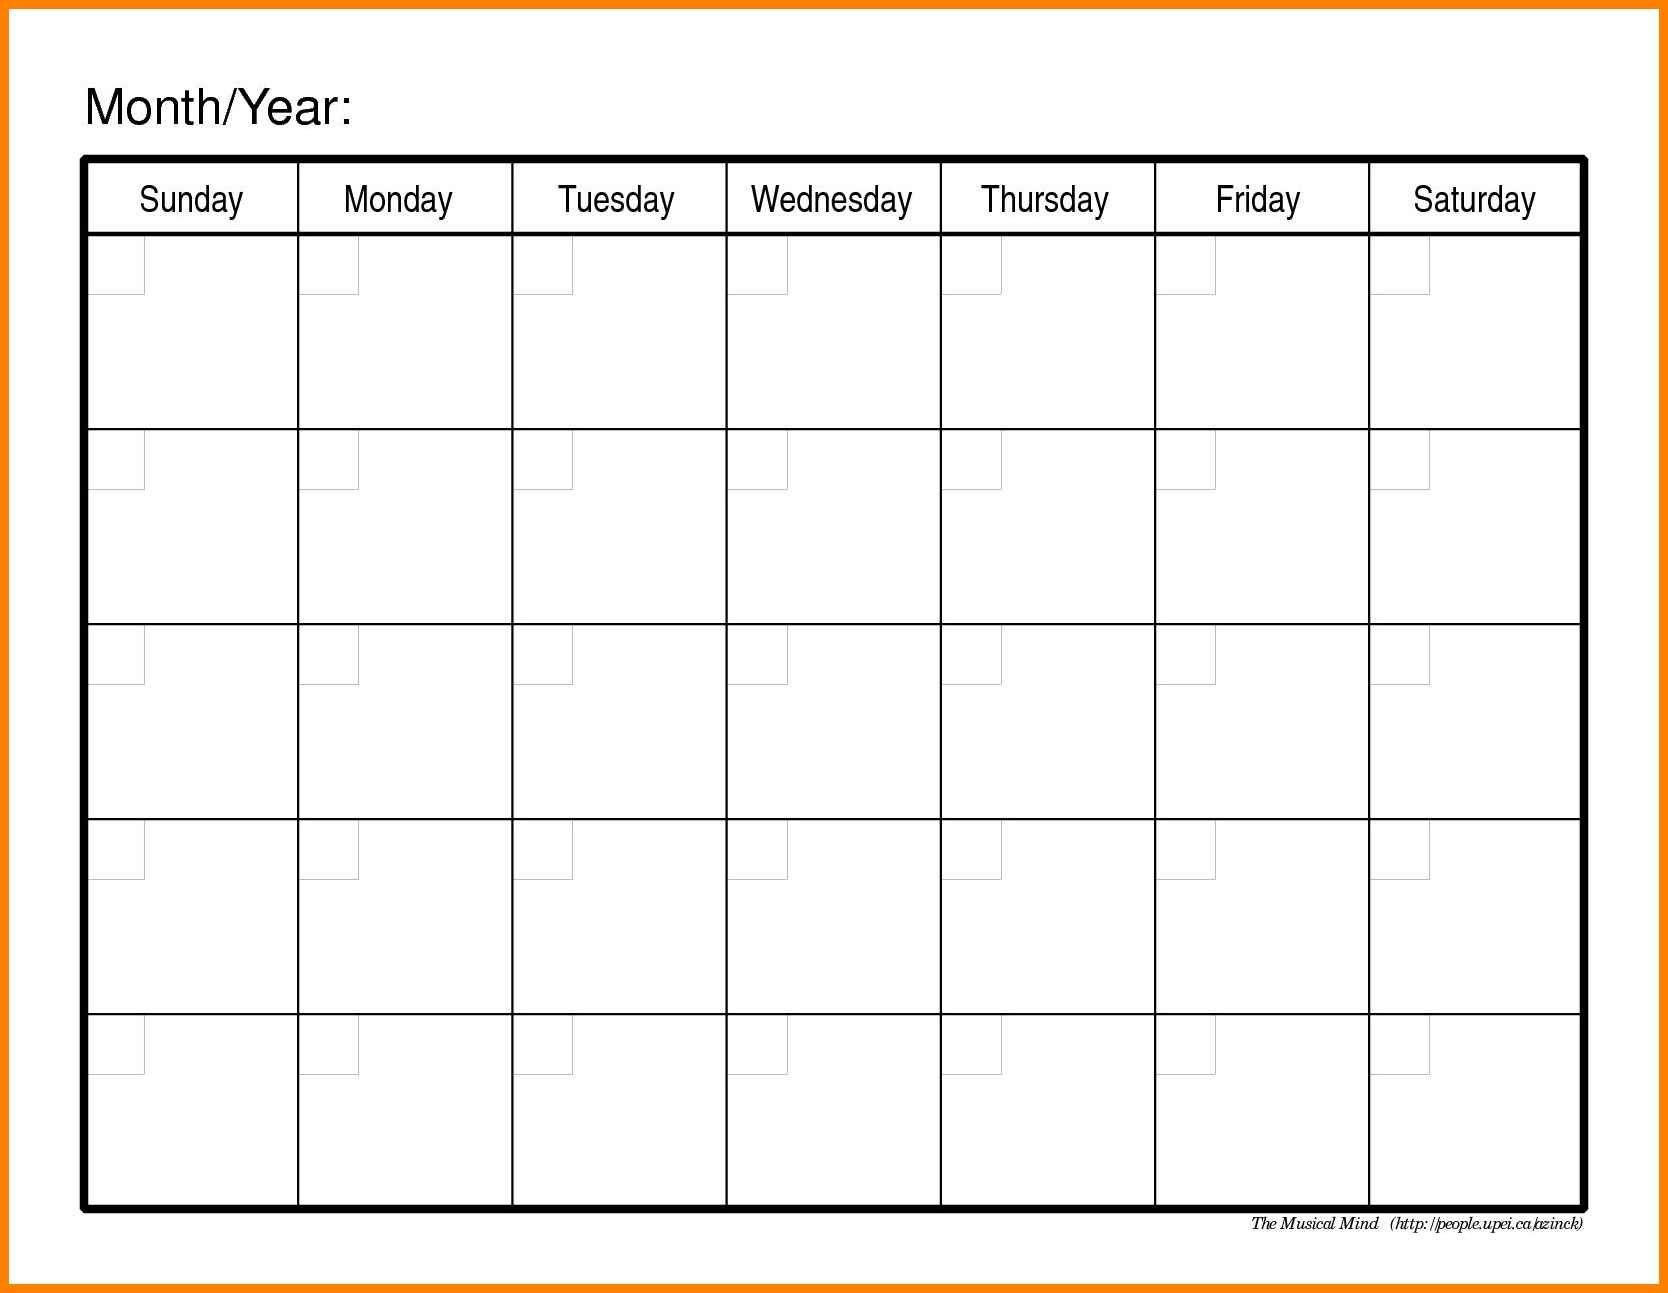 Monthly Calendars To Print Out And Fill : Free Calendar Online Calendar To Fill In